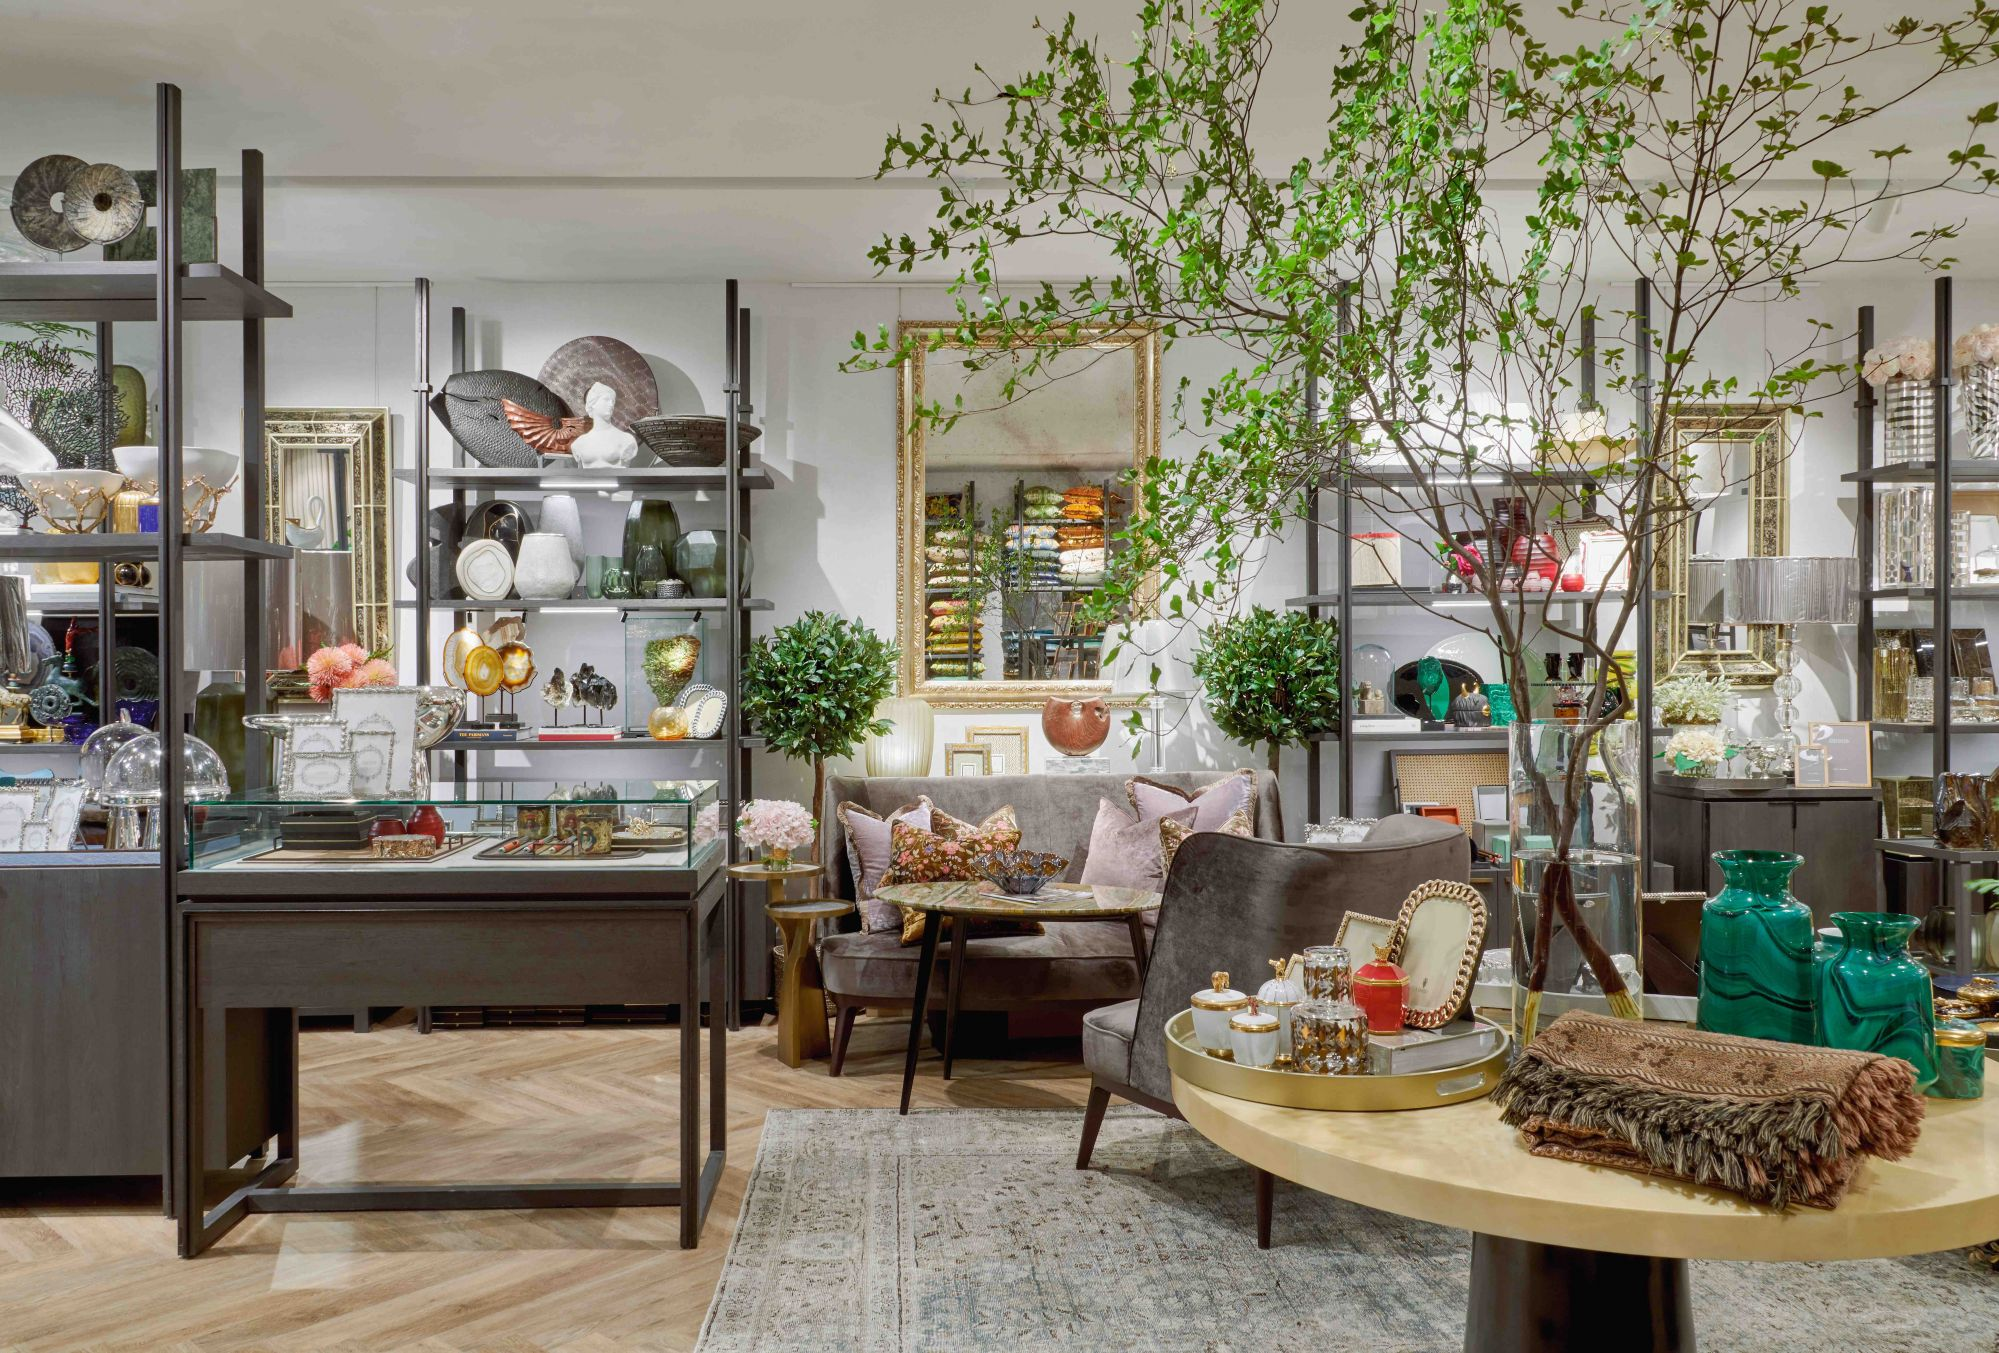 The Strange & Deranged flagship store is a cosy space with a curated selection of homeware and decor objects